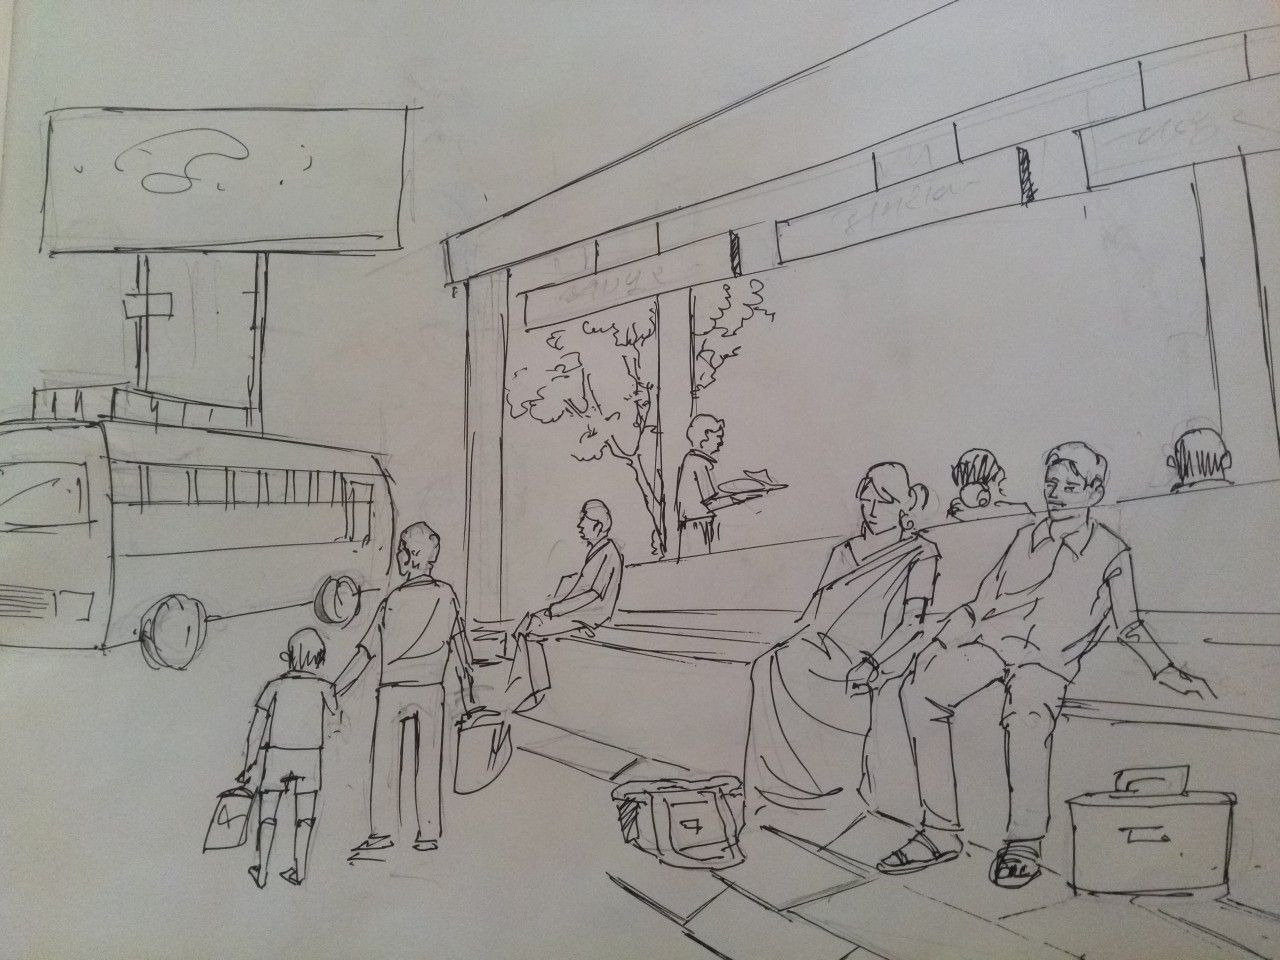 Bus Stand Sketch Sketch In 2019 Drawings Pencil Drawings Sketches